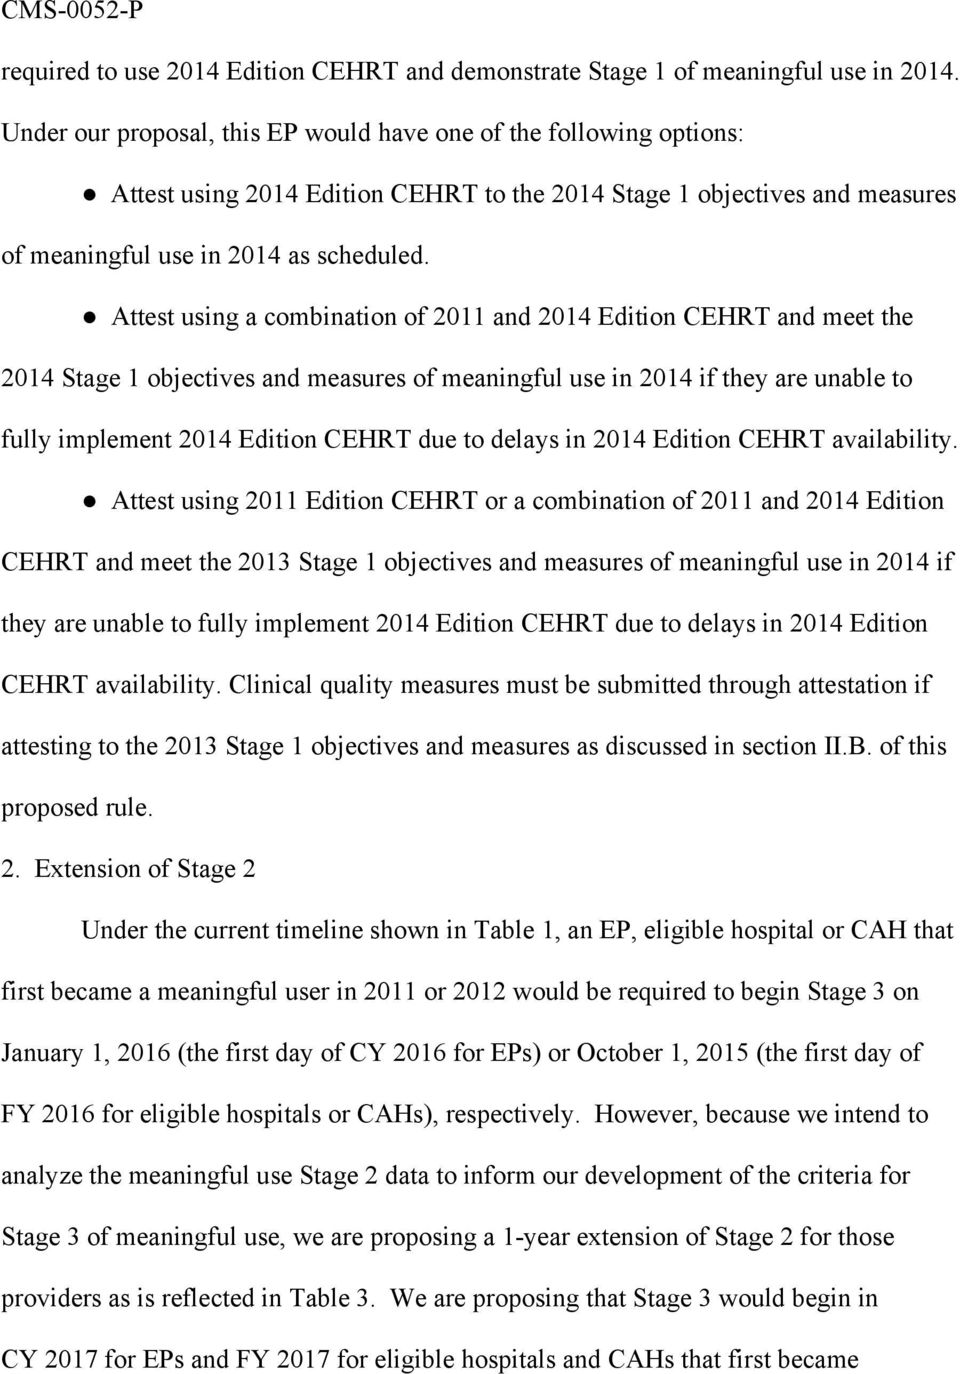 Attest using a combination of 2011 and 2014 Edition CEHRT and meet the 2014 Stage 1 objectives and measures of meaningful use in 2014 if they are unable to fully implement 2014 Edition CEHRT due to